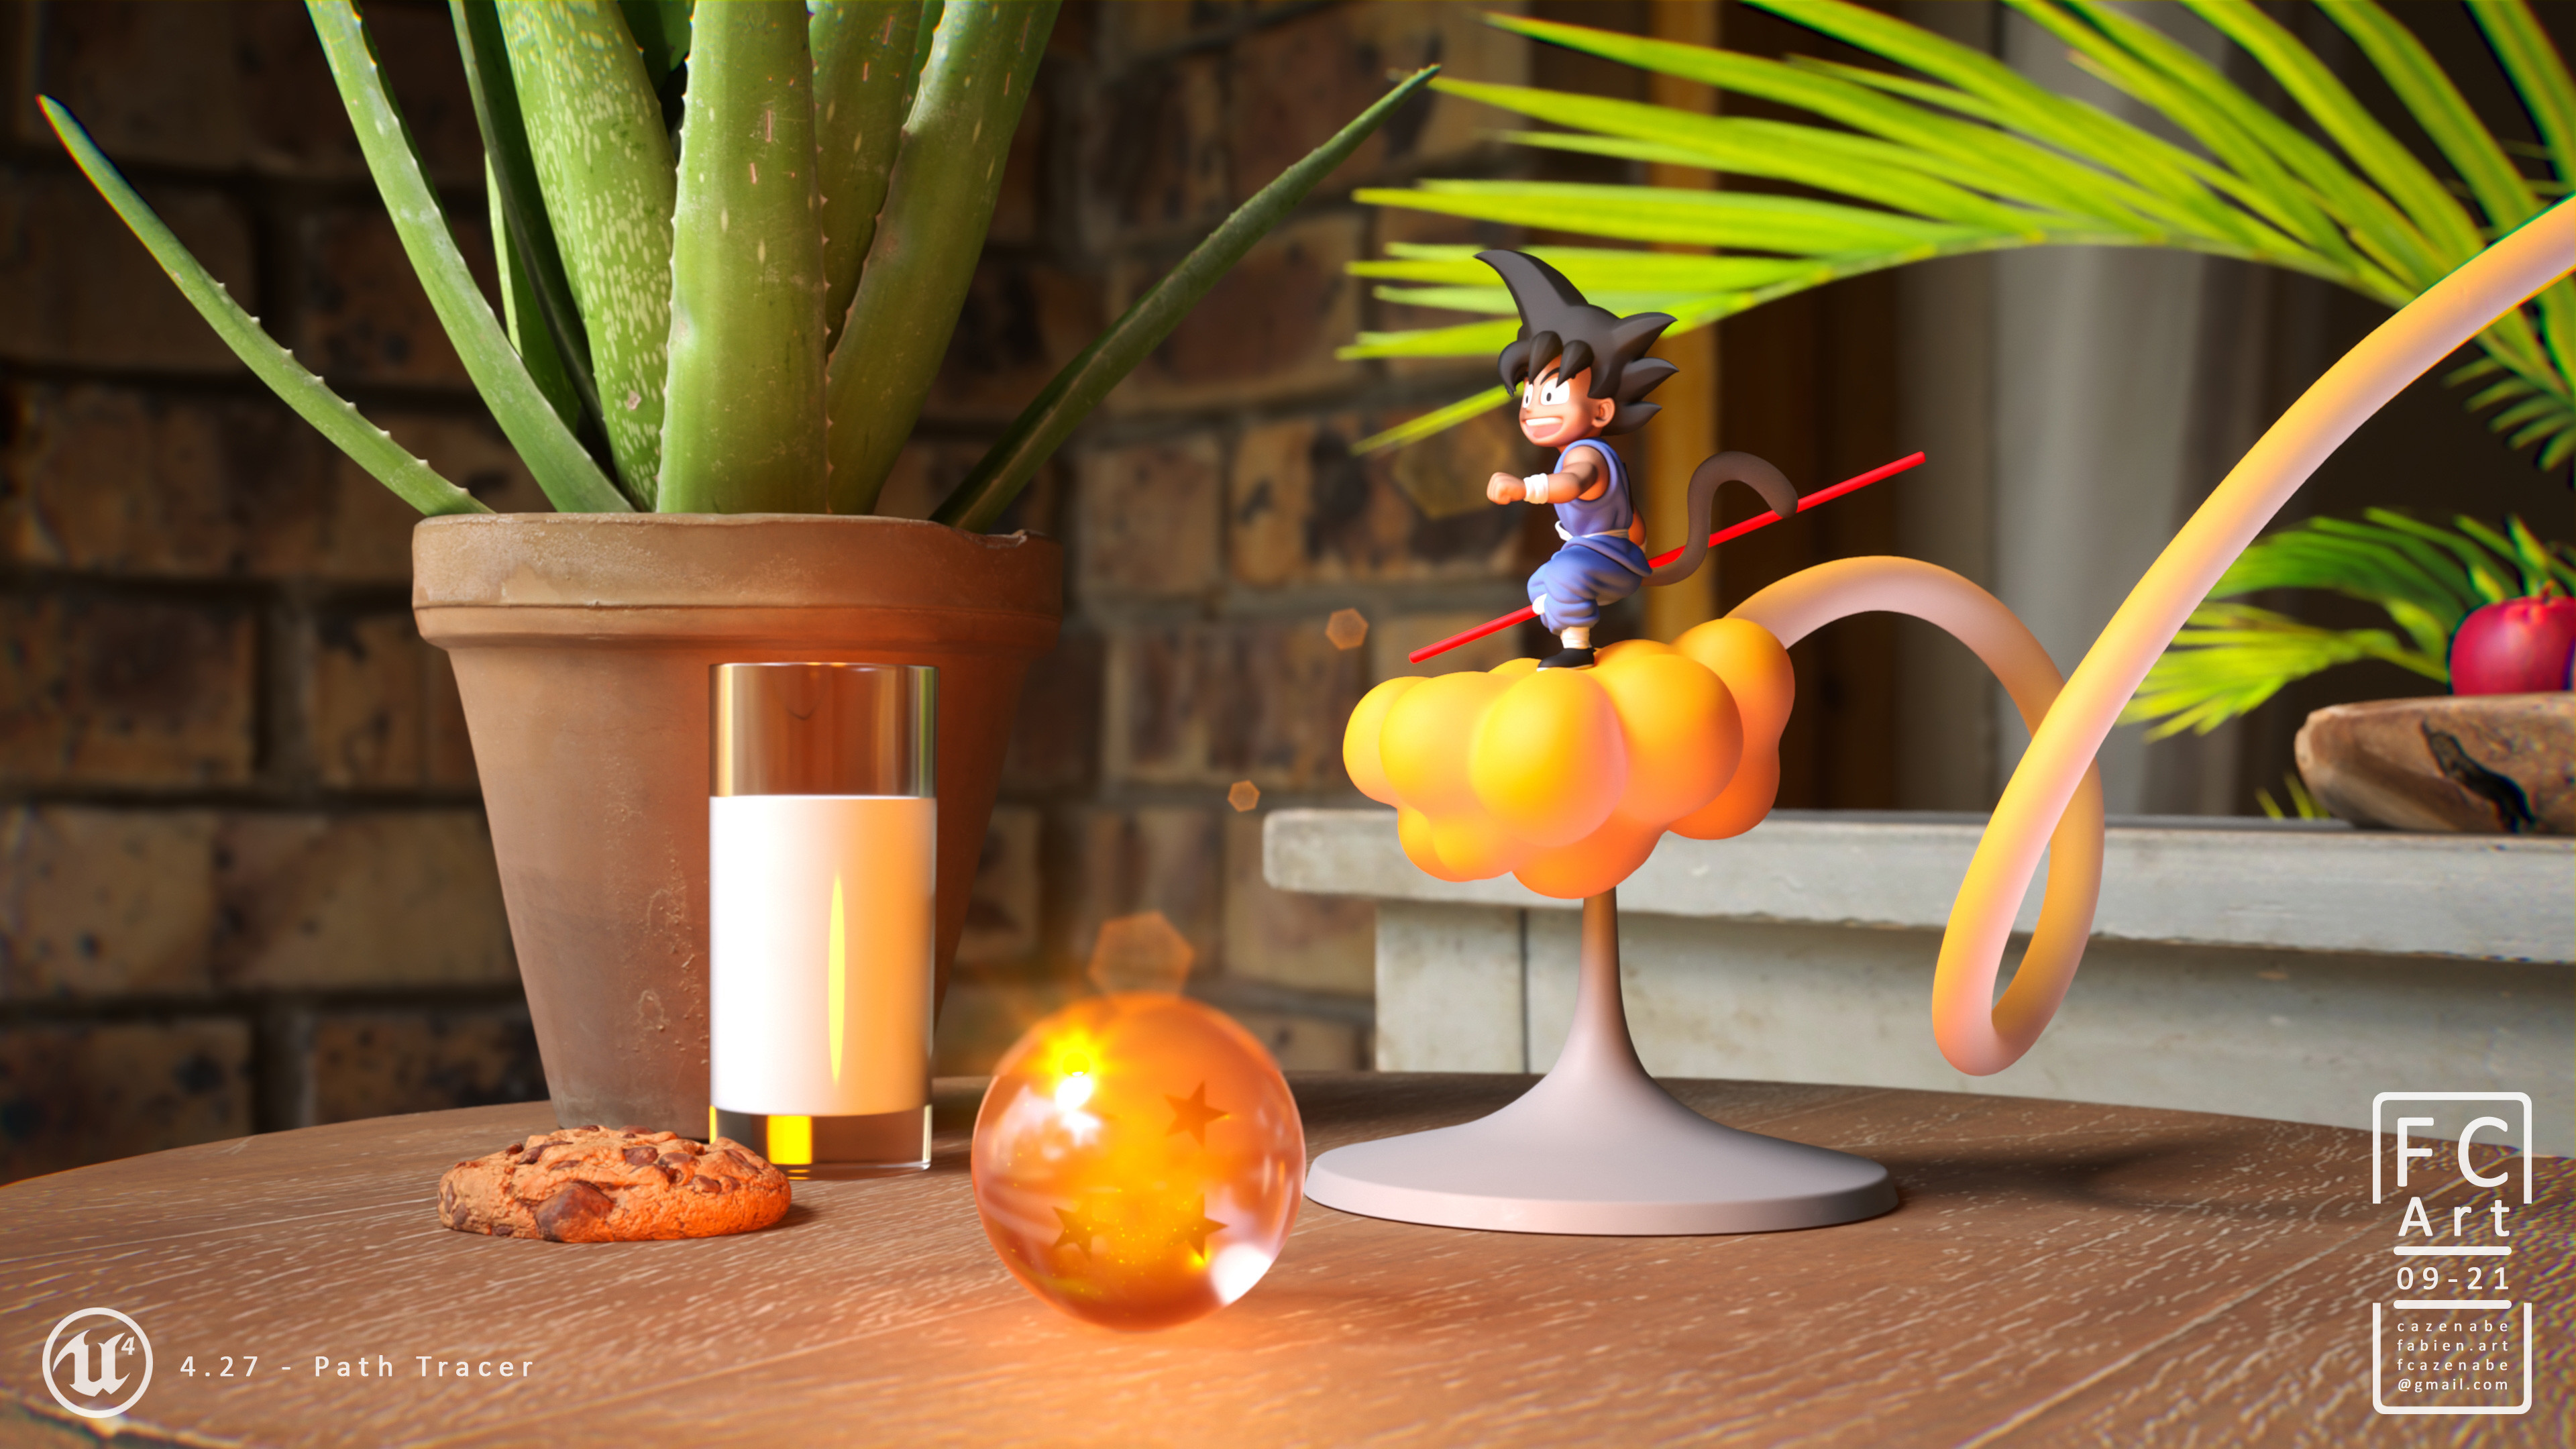 Rendered with Path Tracing in Unreal Engine 4.27